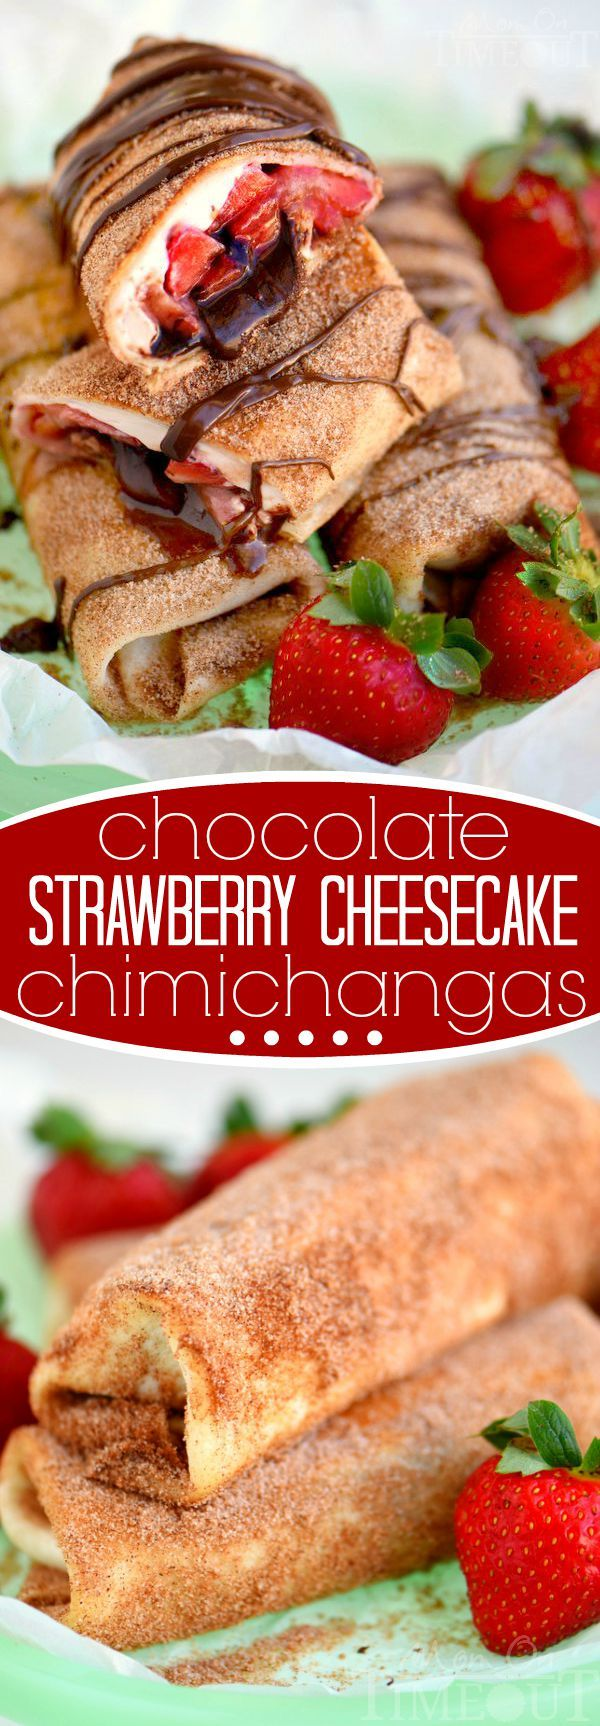 Chocolate Strawberry Cheesecake Chimichangas